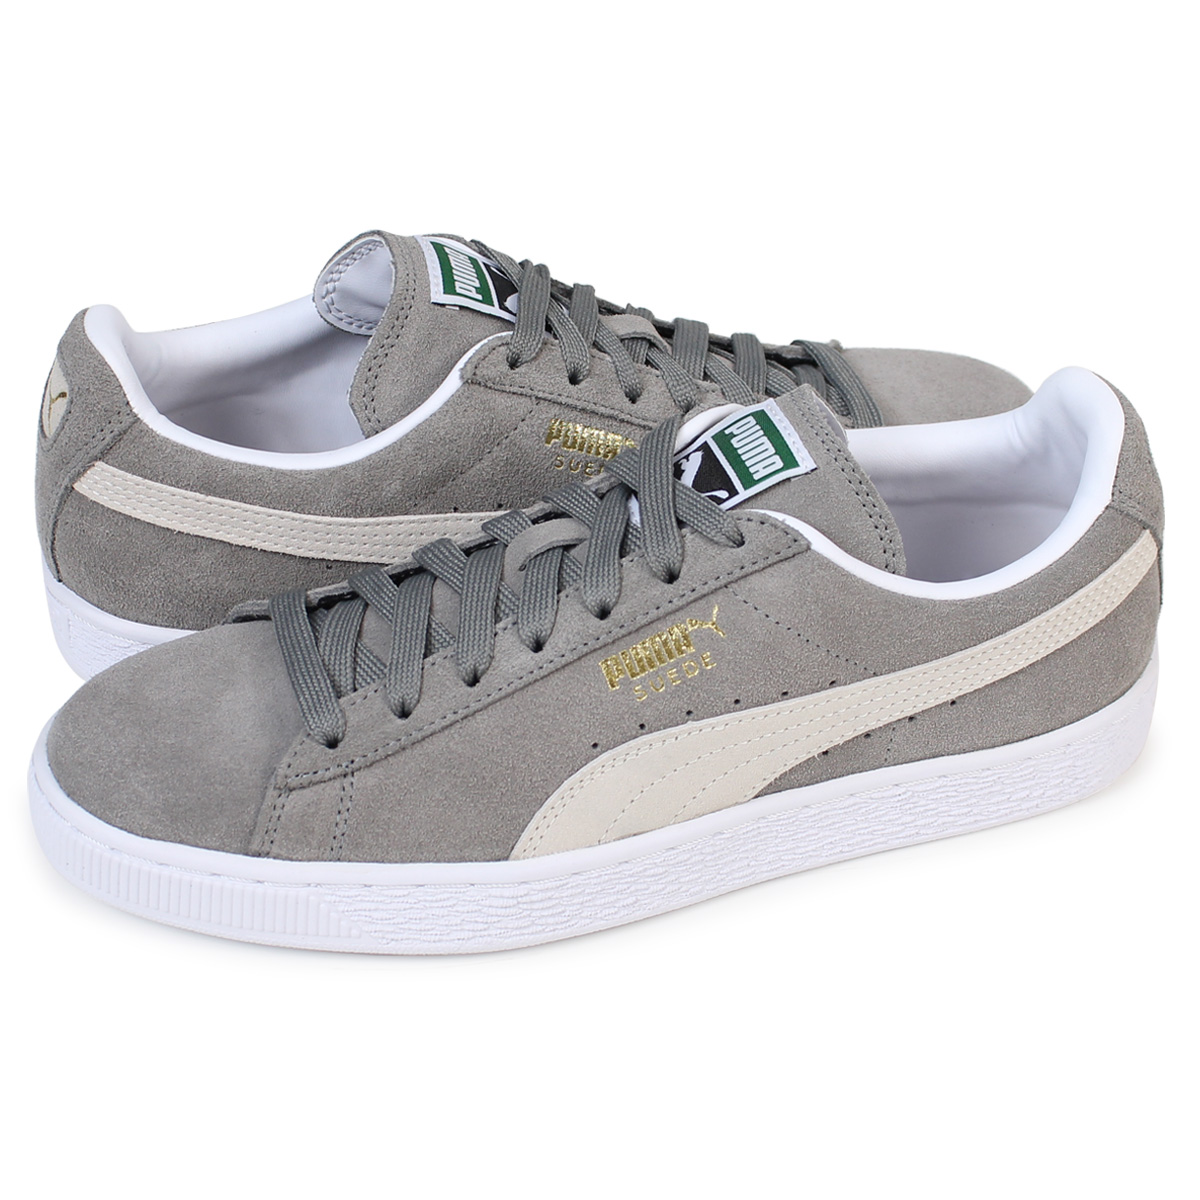 new concept a8ac7 64f11 PUMA SUEDE CLASSIC + Puma suede classical music sneakers 352,634-66 men's  lady's shoes gray [load planned Shinnyu load in reservation product 12/14  ...